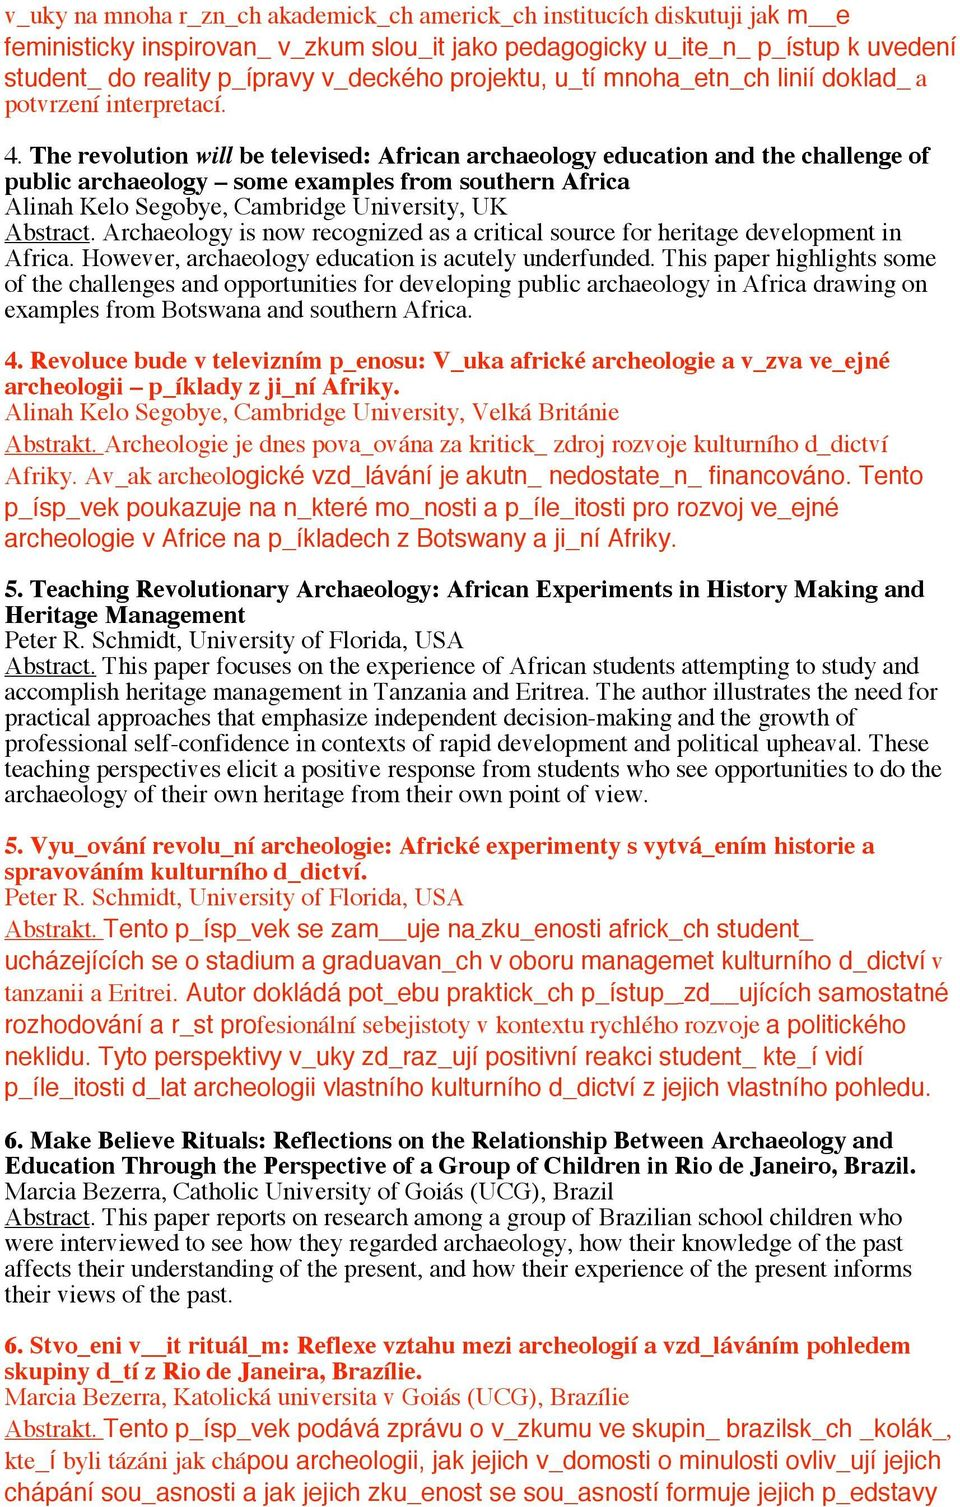 The revolution will be televised: African archaeology education and the challenge of public archaeology some examples from southern Africa Alinah Kelo Segobye, Cambridge University, UK Abstract.